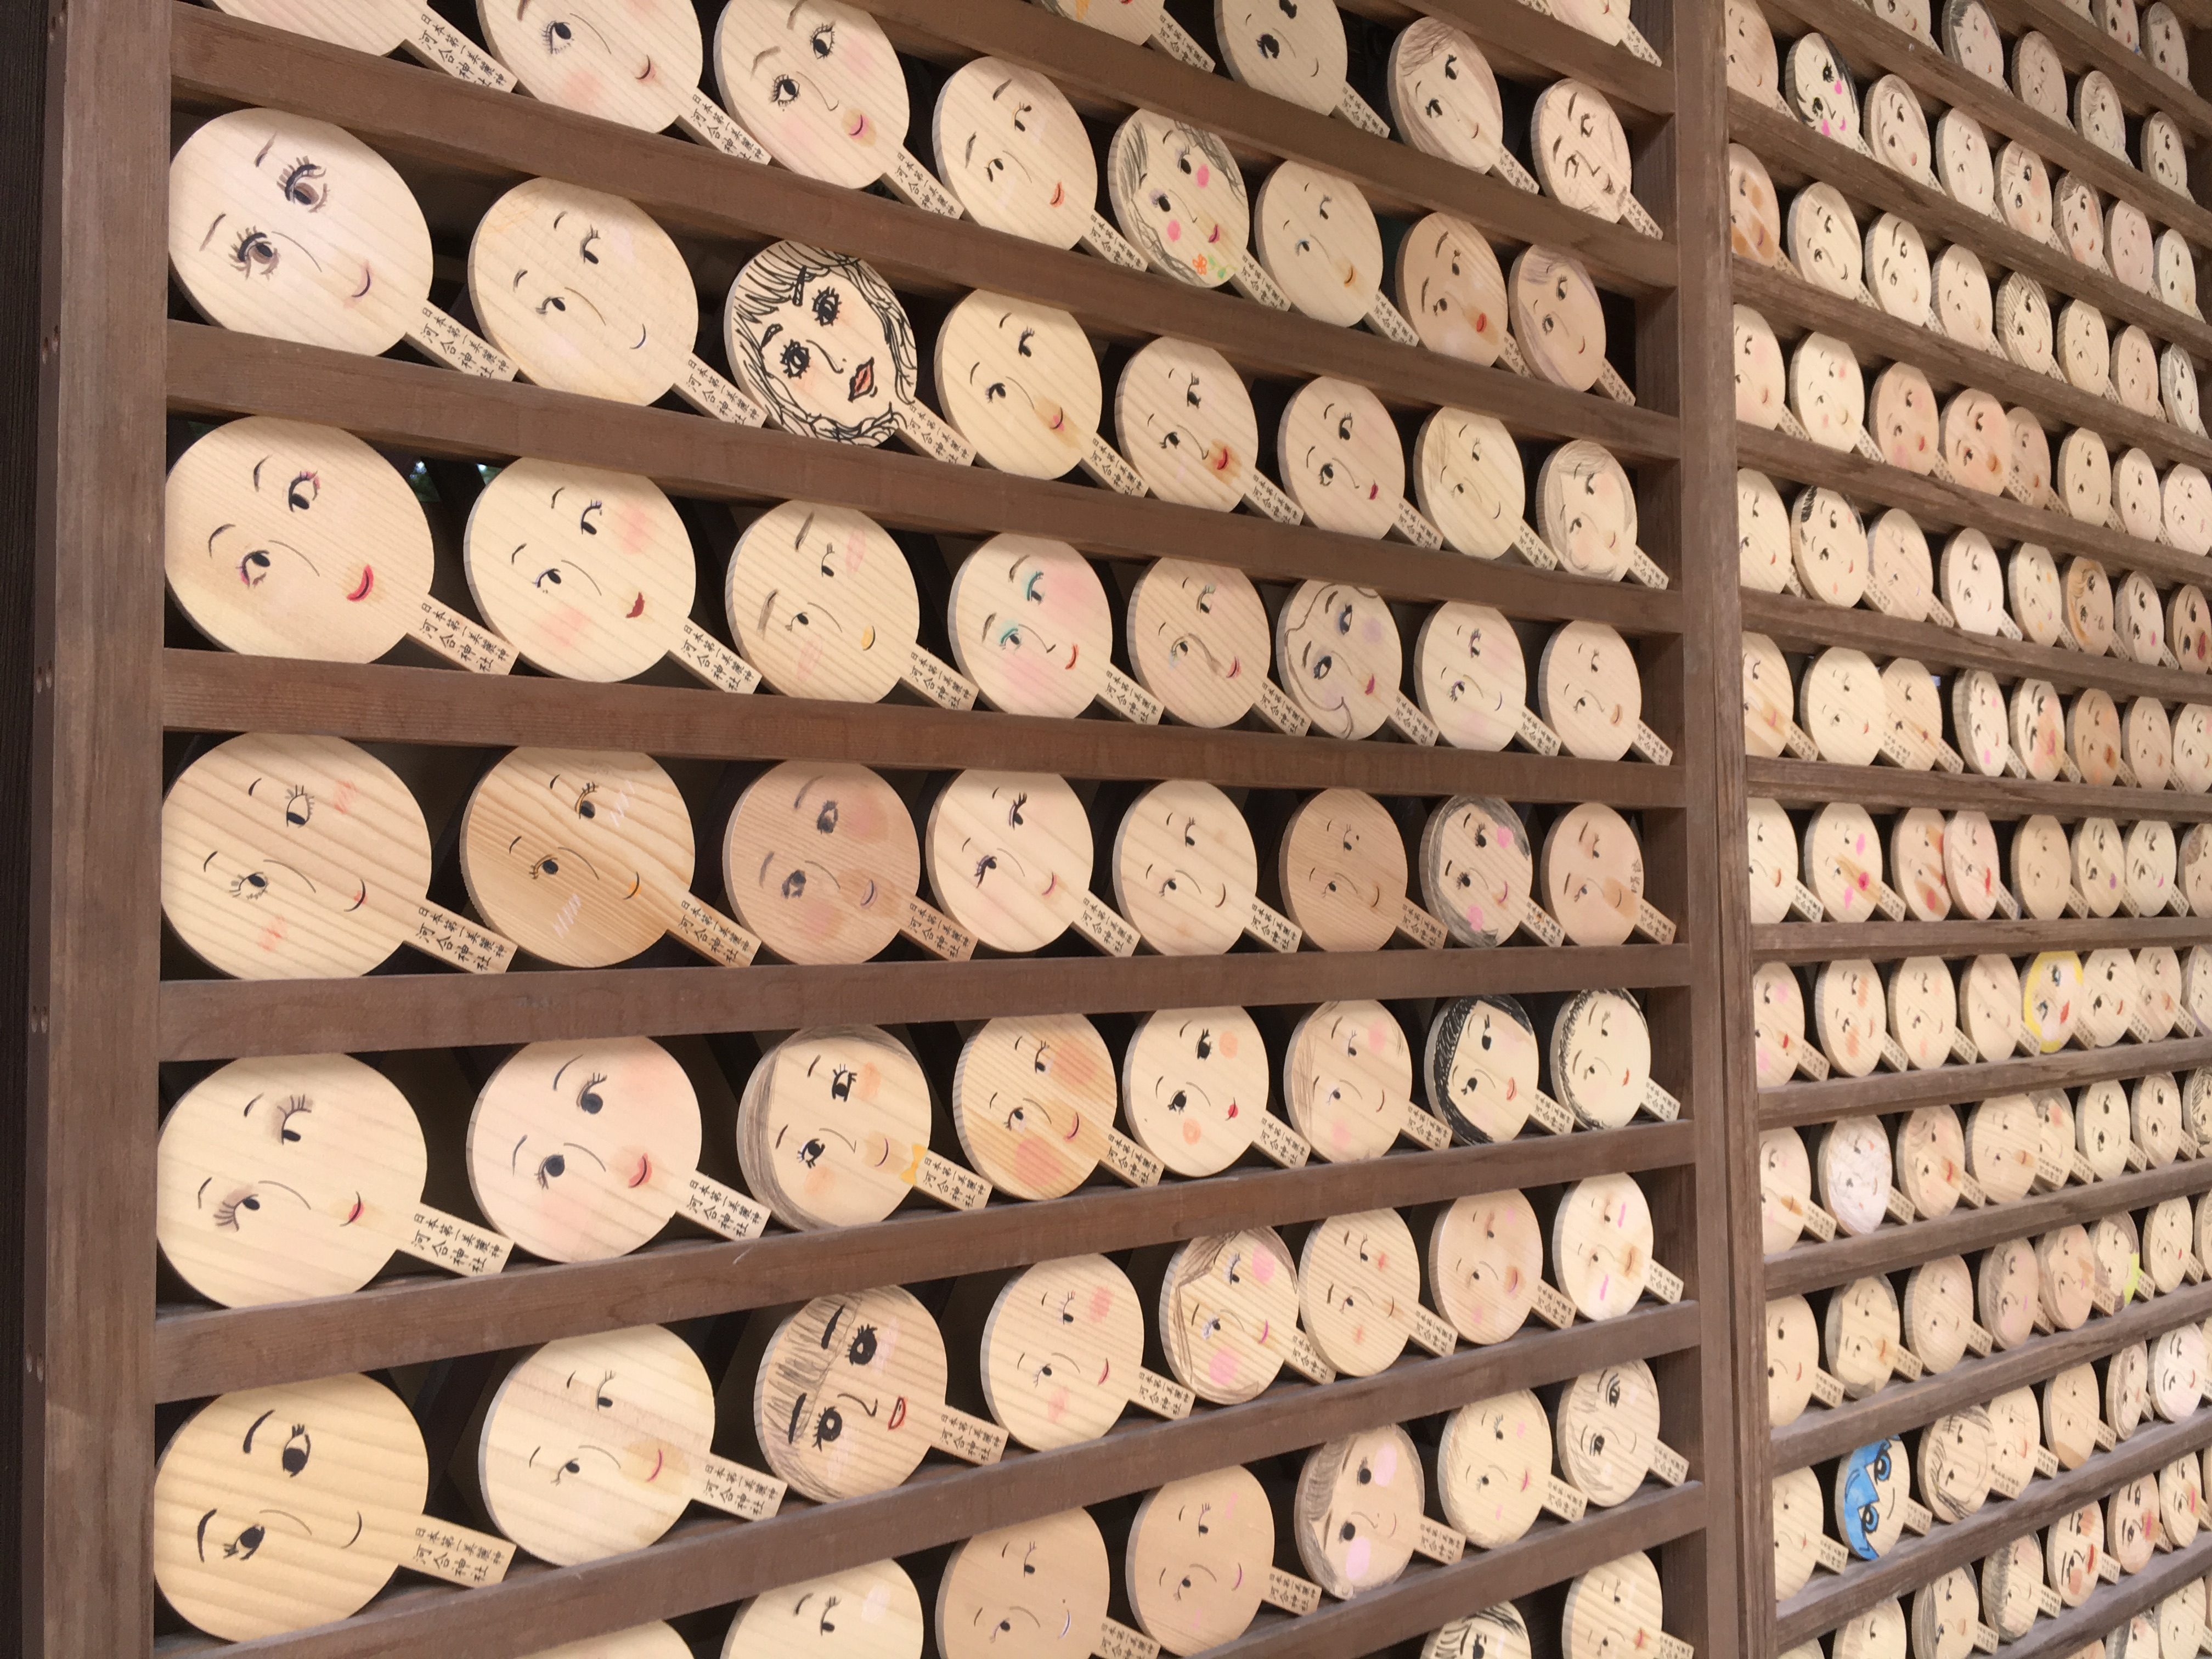 mirror shaped ema at kawai shrine with beautiful faces drawn on them.